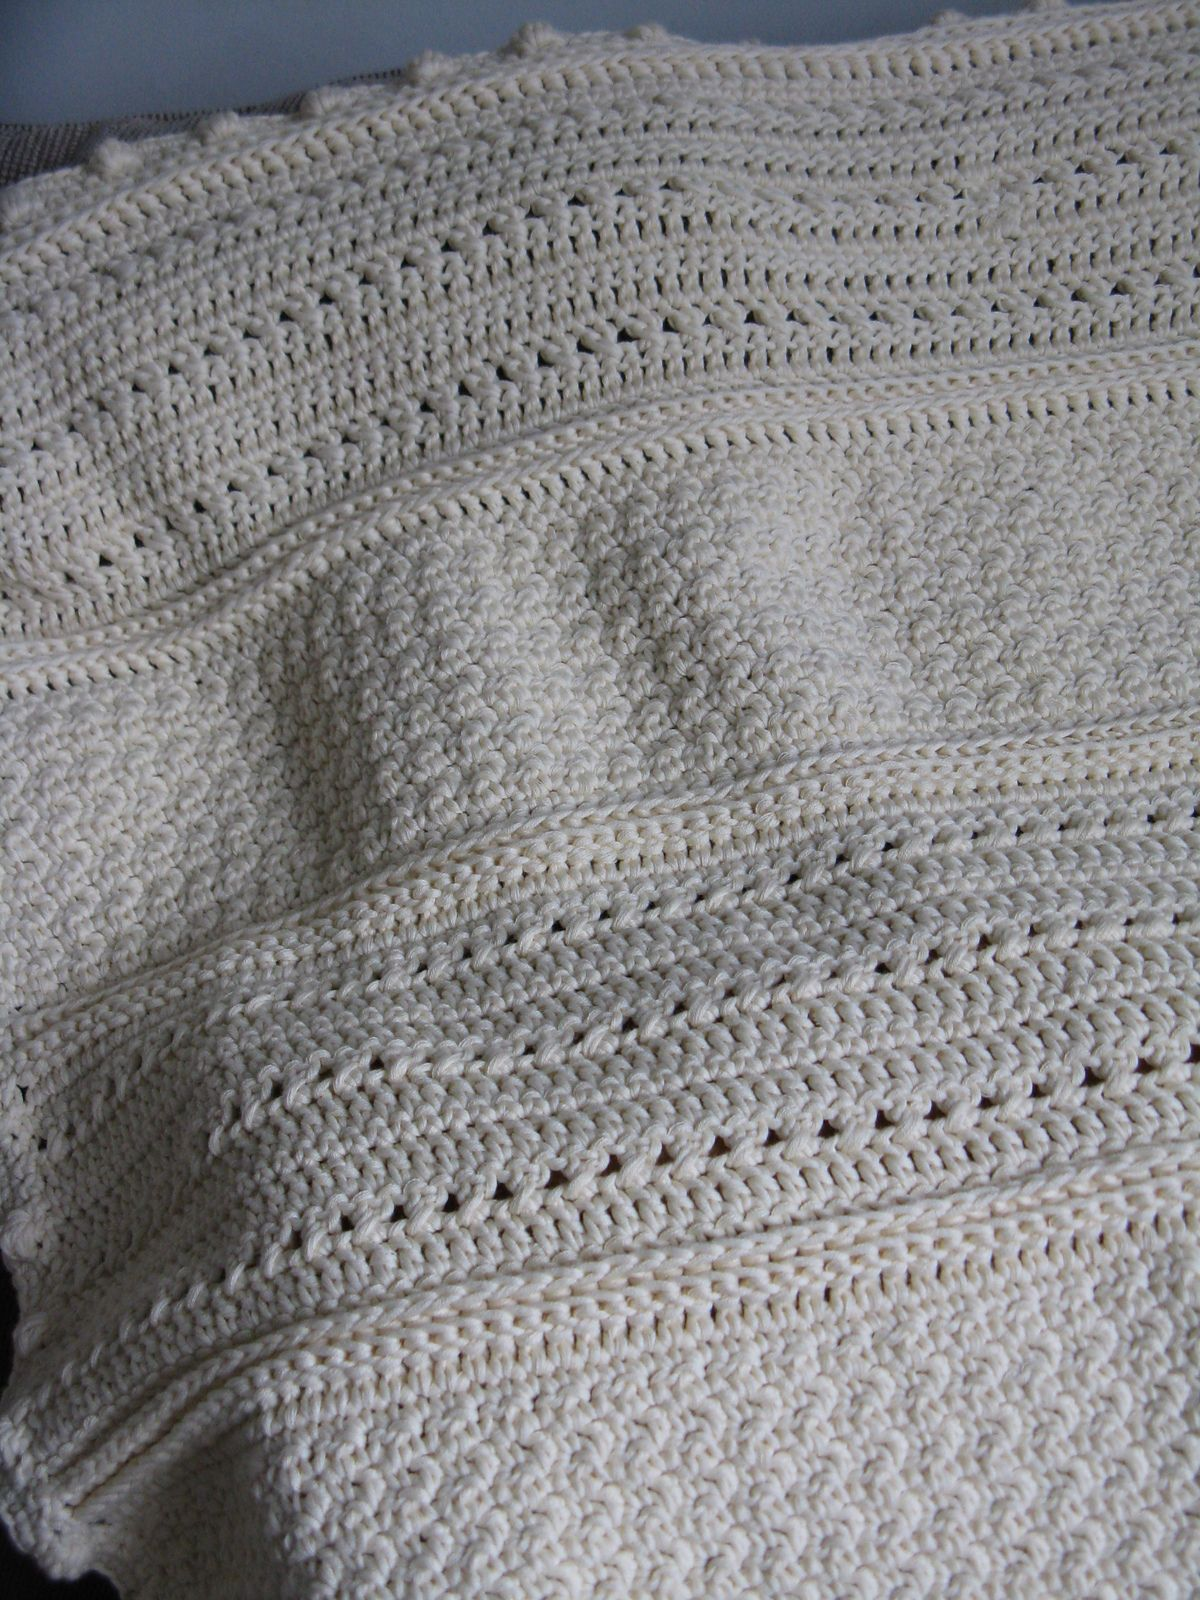 May Day Baby Blanket By Cindy Van Den Toorn - Free Crochet Pattern ...